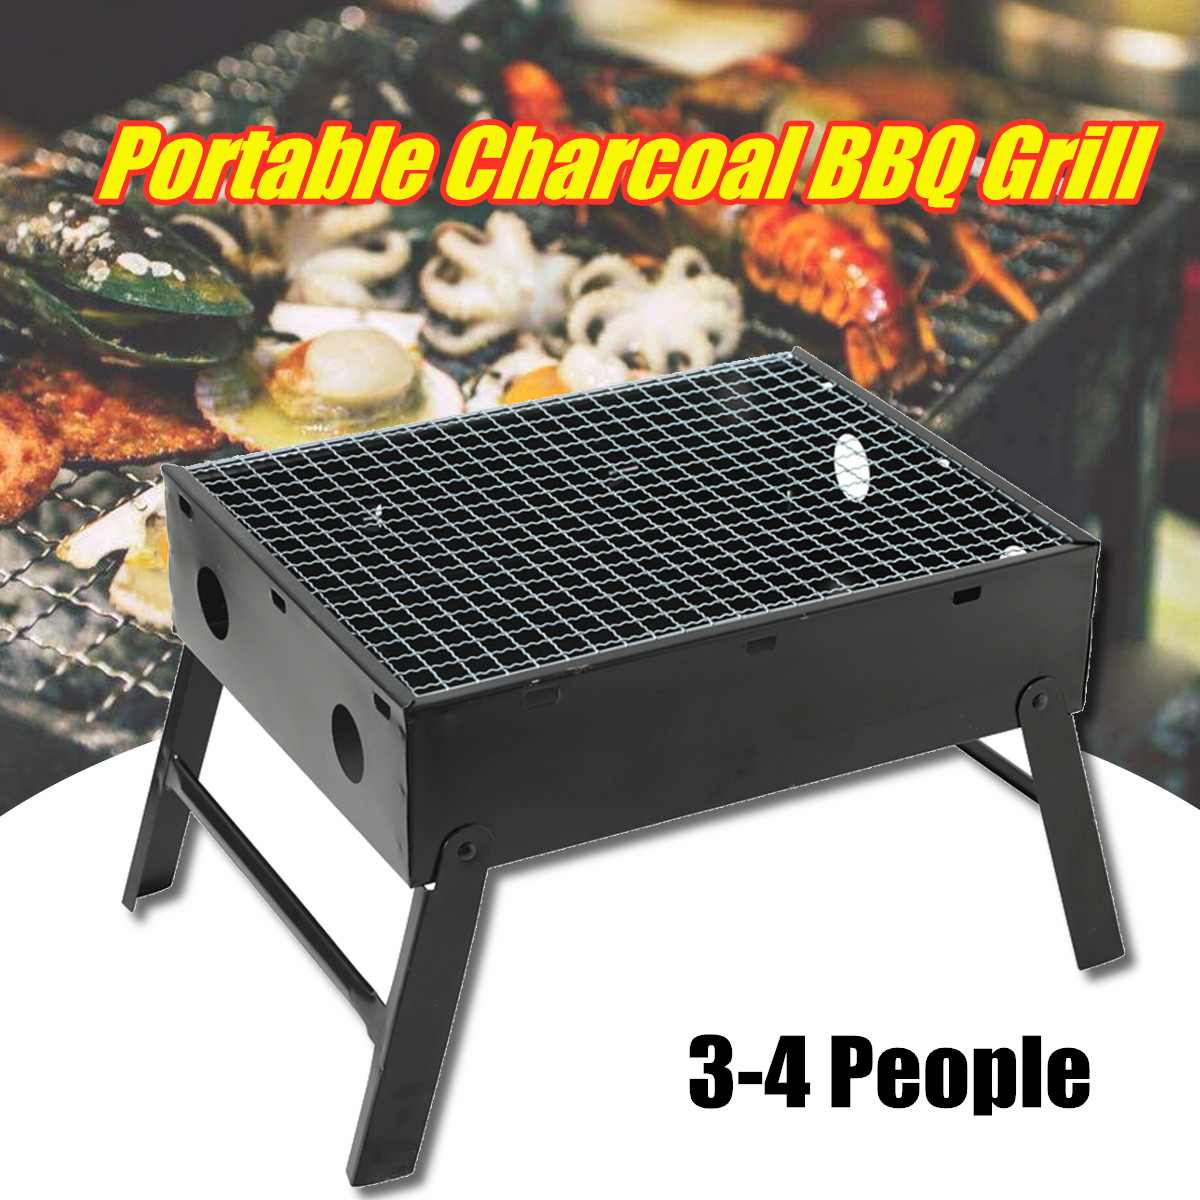 Portable BBQ Grill Folding Charcoal Barbecue Grills Camping Graden Outdoor Travel BBQ Tools Accessories Foldable CookwarePortable BBQ Grill Folding Charcoal Barbecue Grills Camping Graden Outdoor Travel BBQ Tools Accessories Foldable Cookware